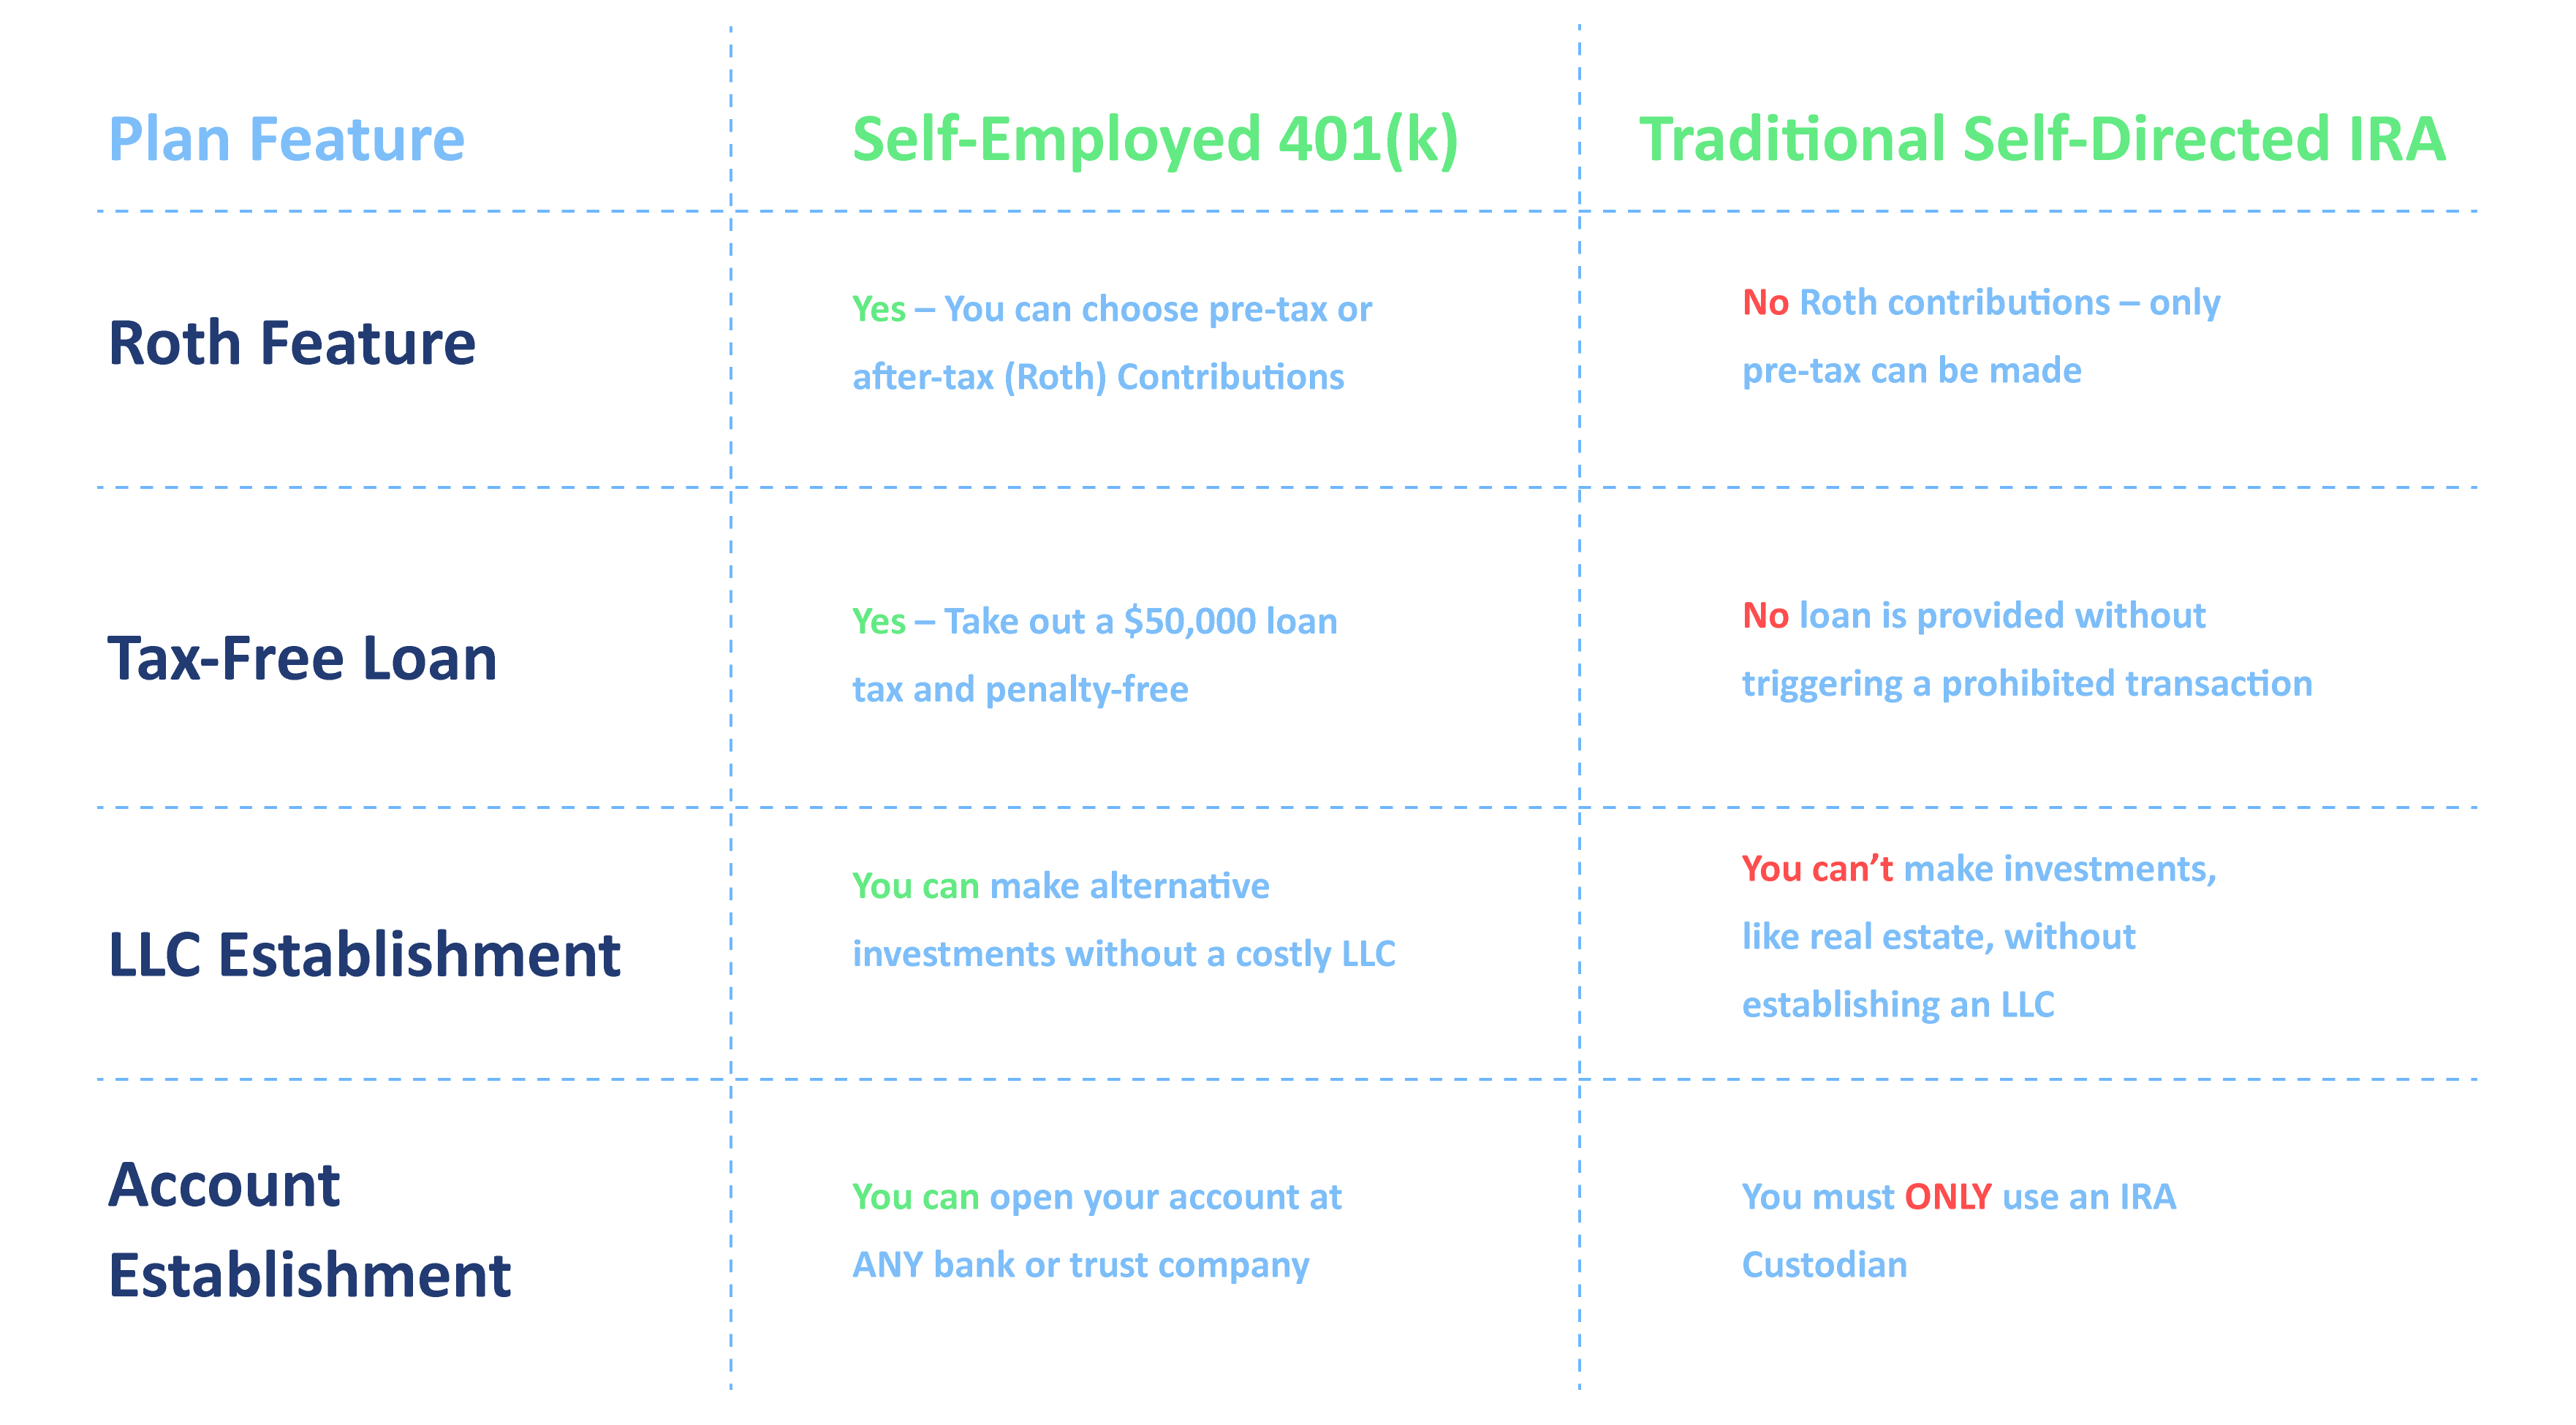 self-employed 401(k) plan by IRA Financial Group